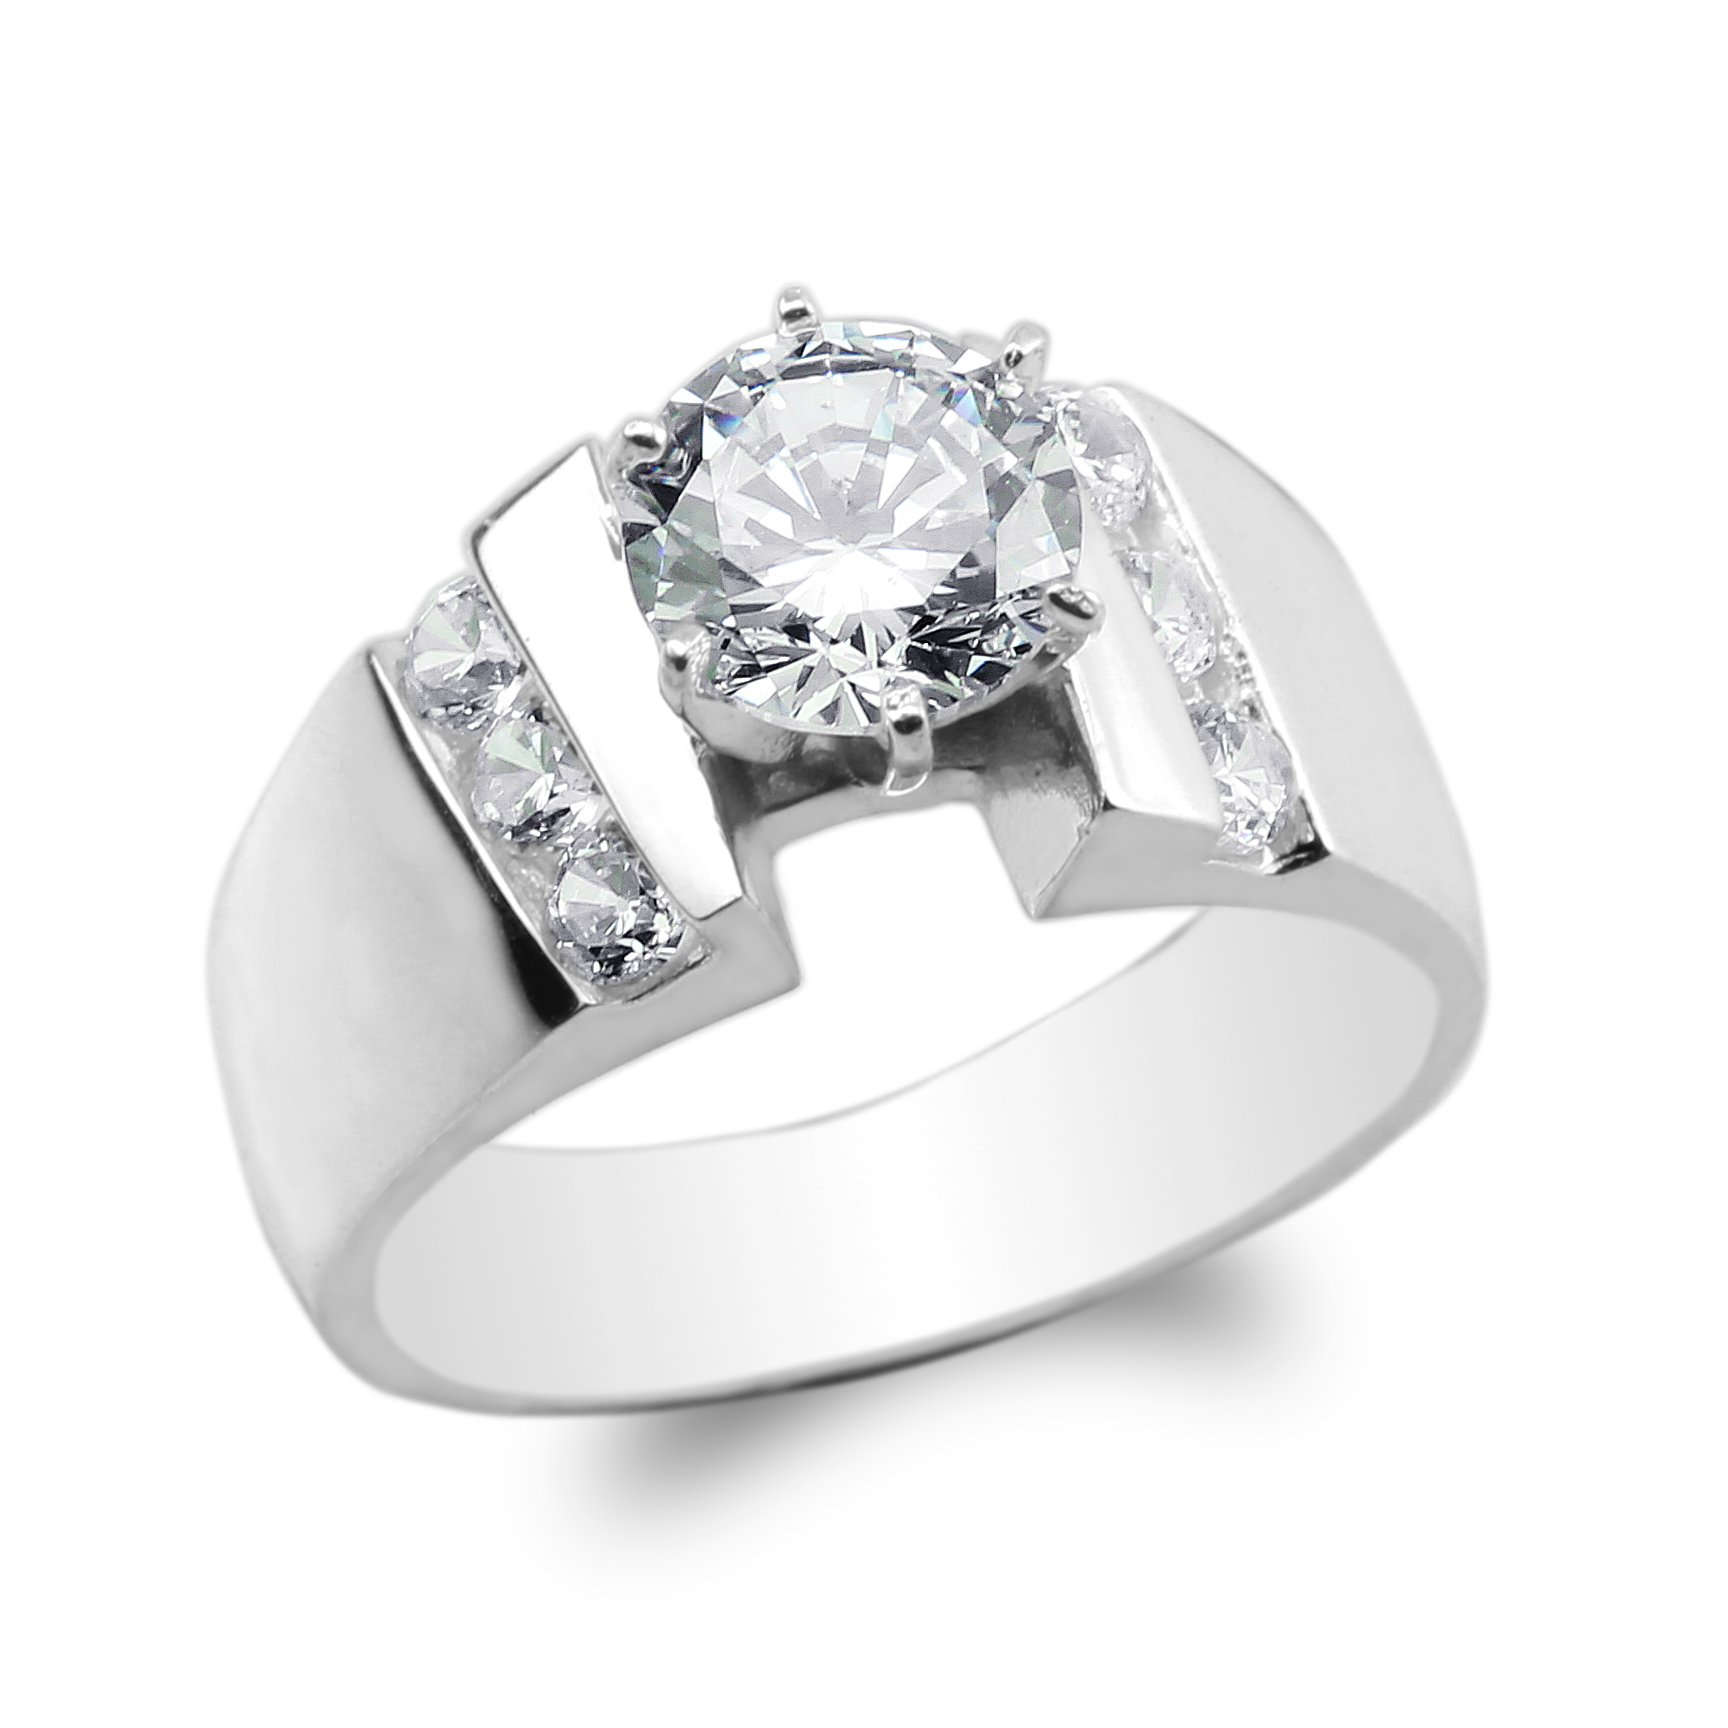 JamesJenny Ladies 925 Sterling Silver Round CZ Solitaire Wide Band Ring Size 5.5